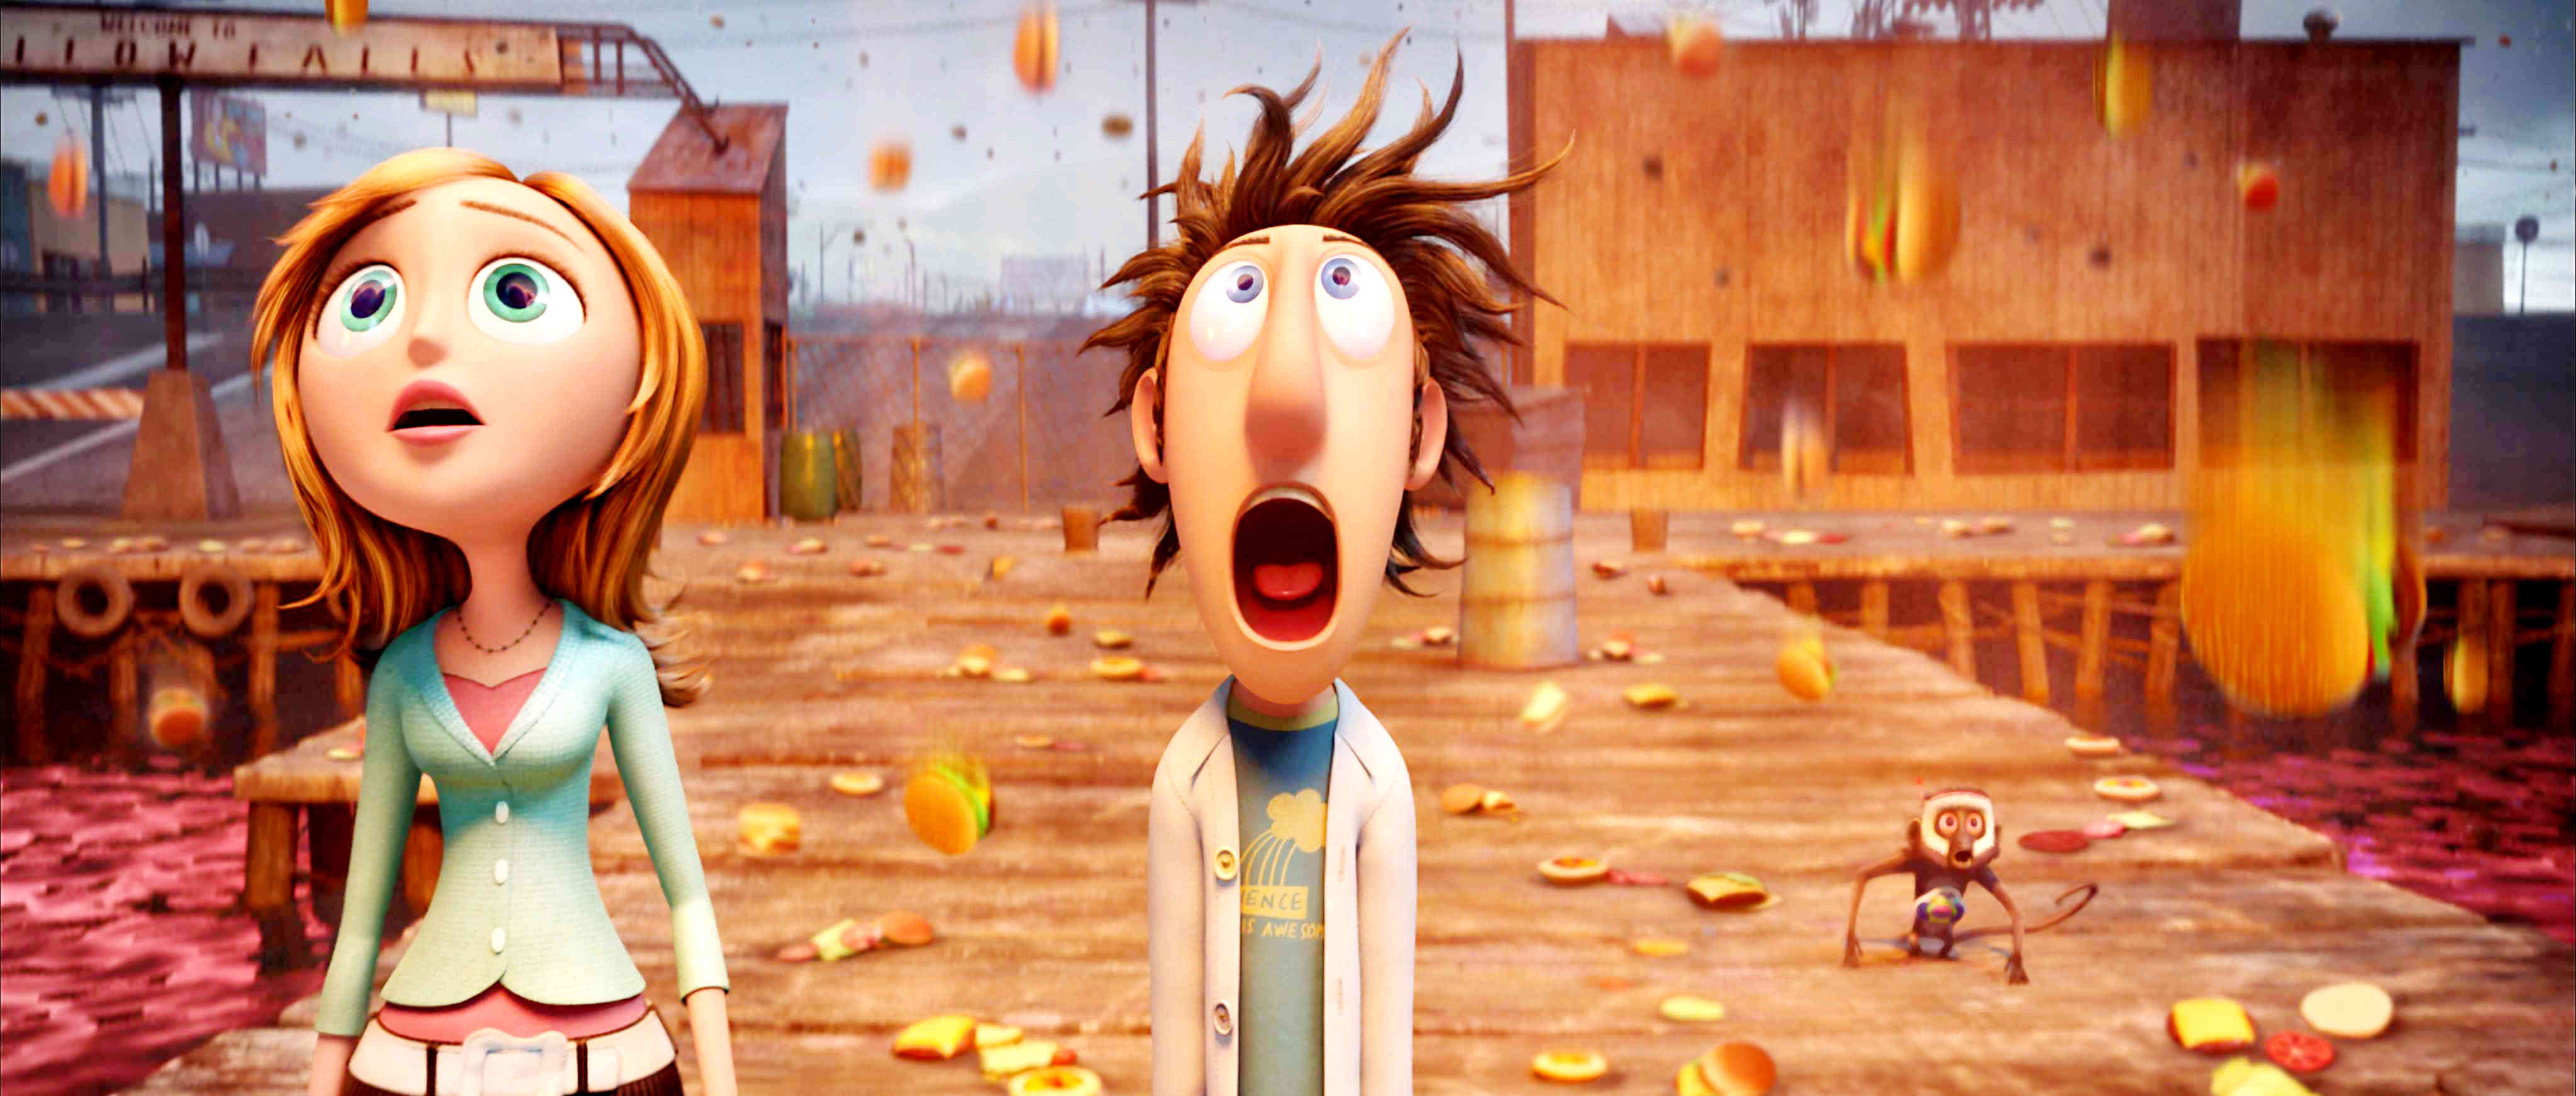 Cloudy with a Chance of Meatballs 2009 Film Review  ireckonthat